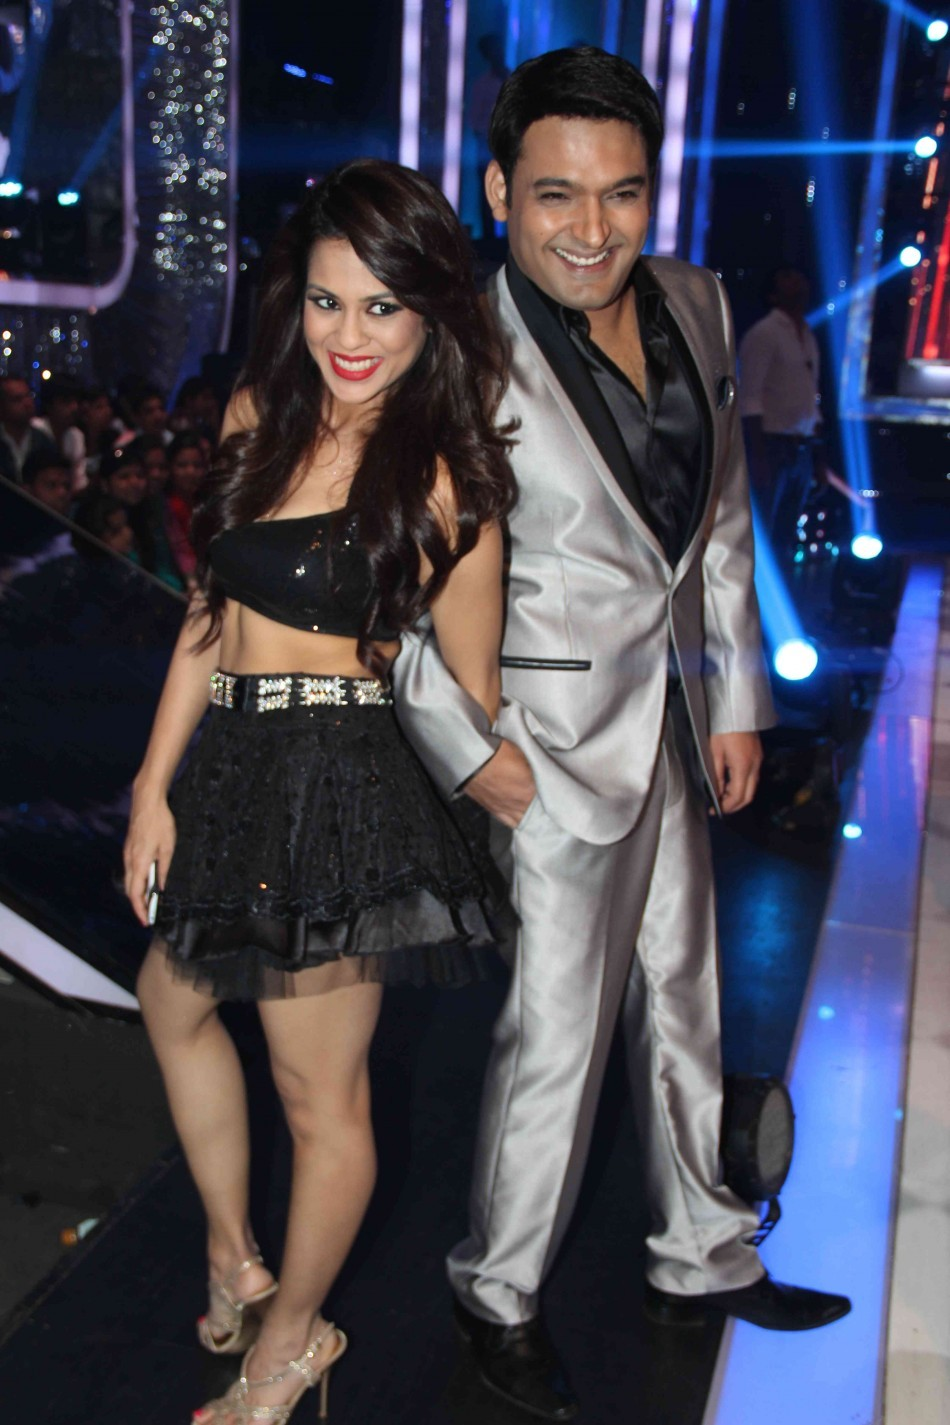 Show host Kapil with contestant Sana Saeed (photo Varinder Chawla)